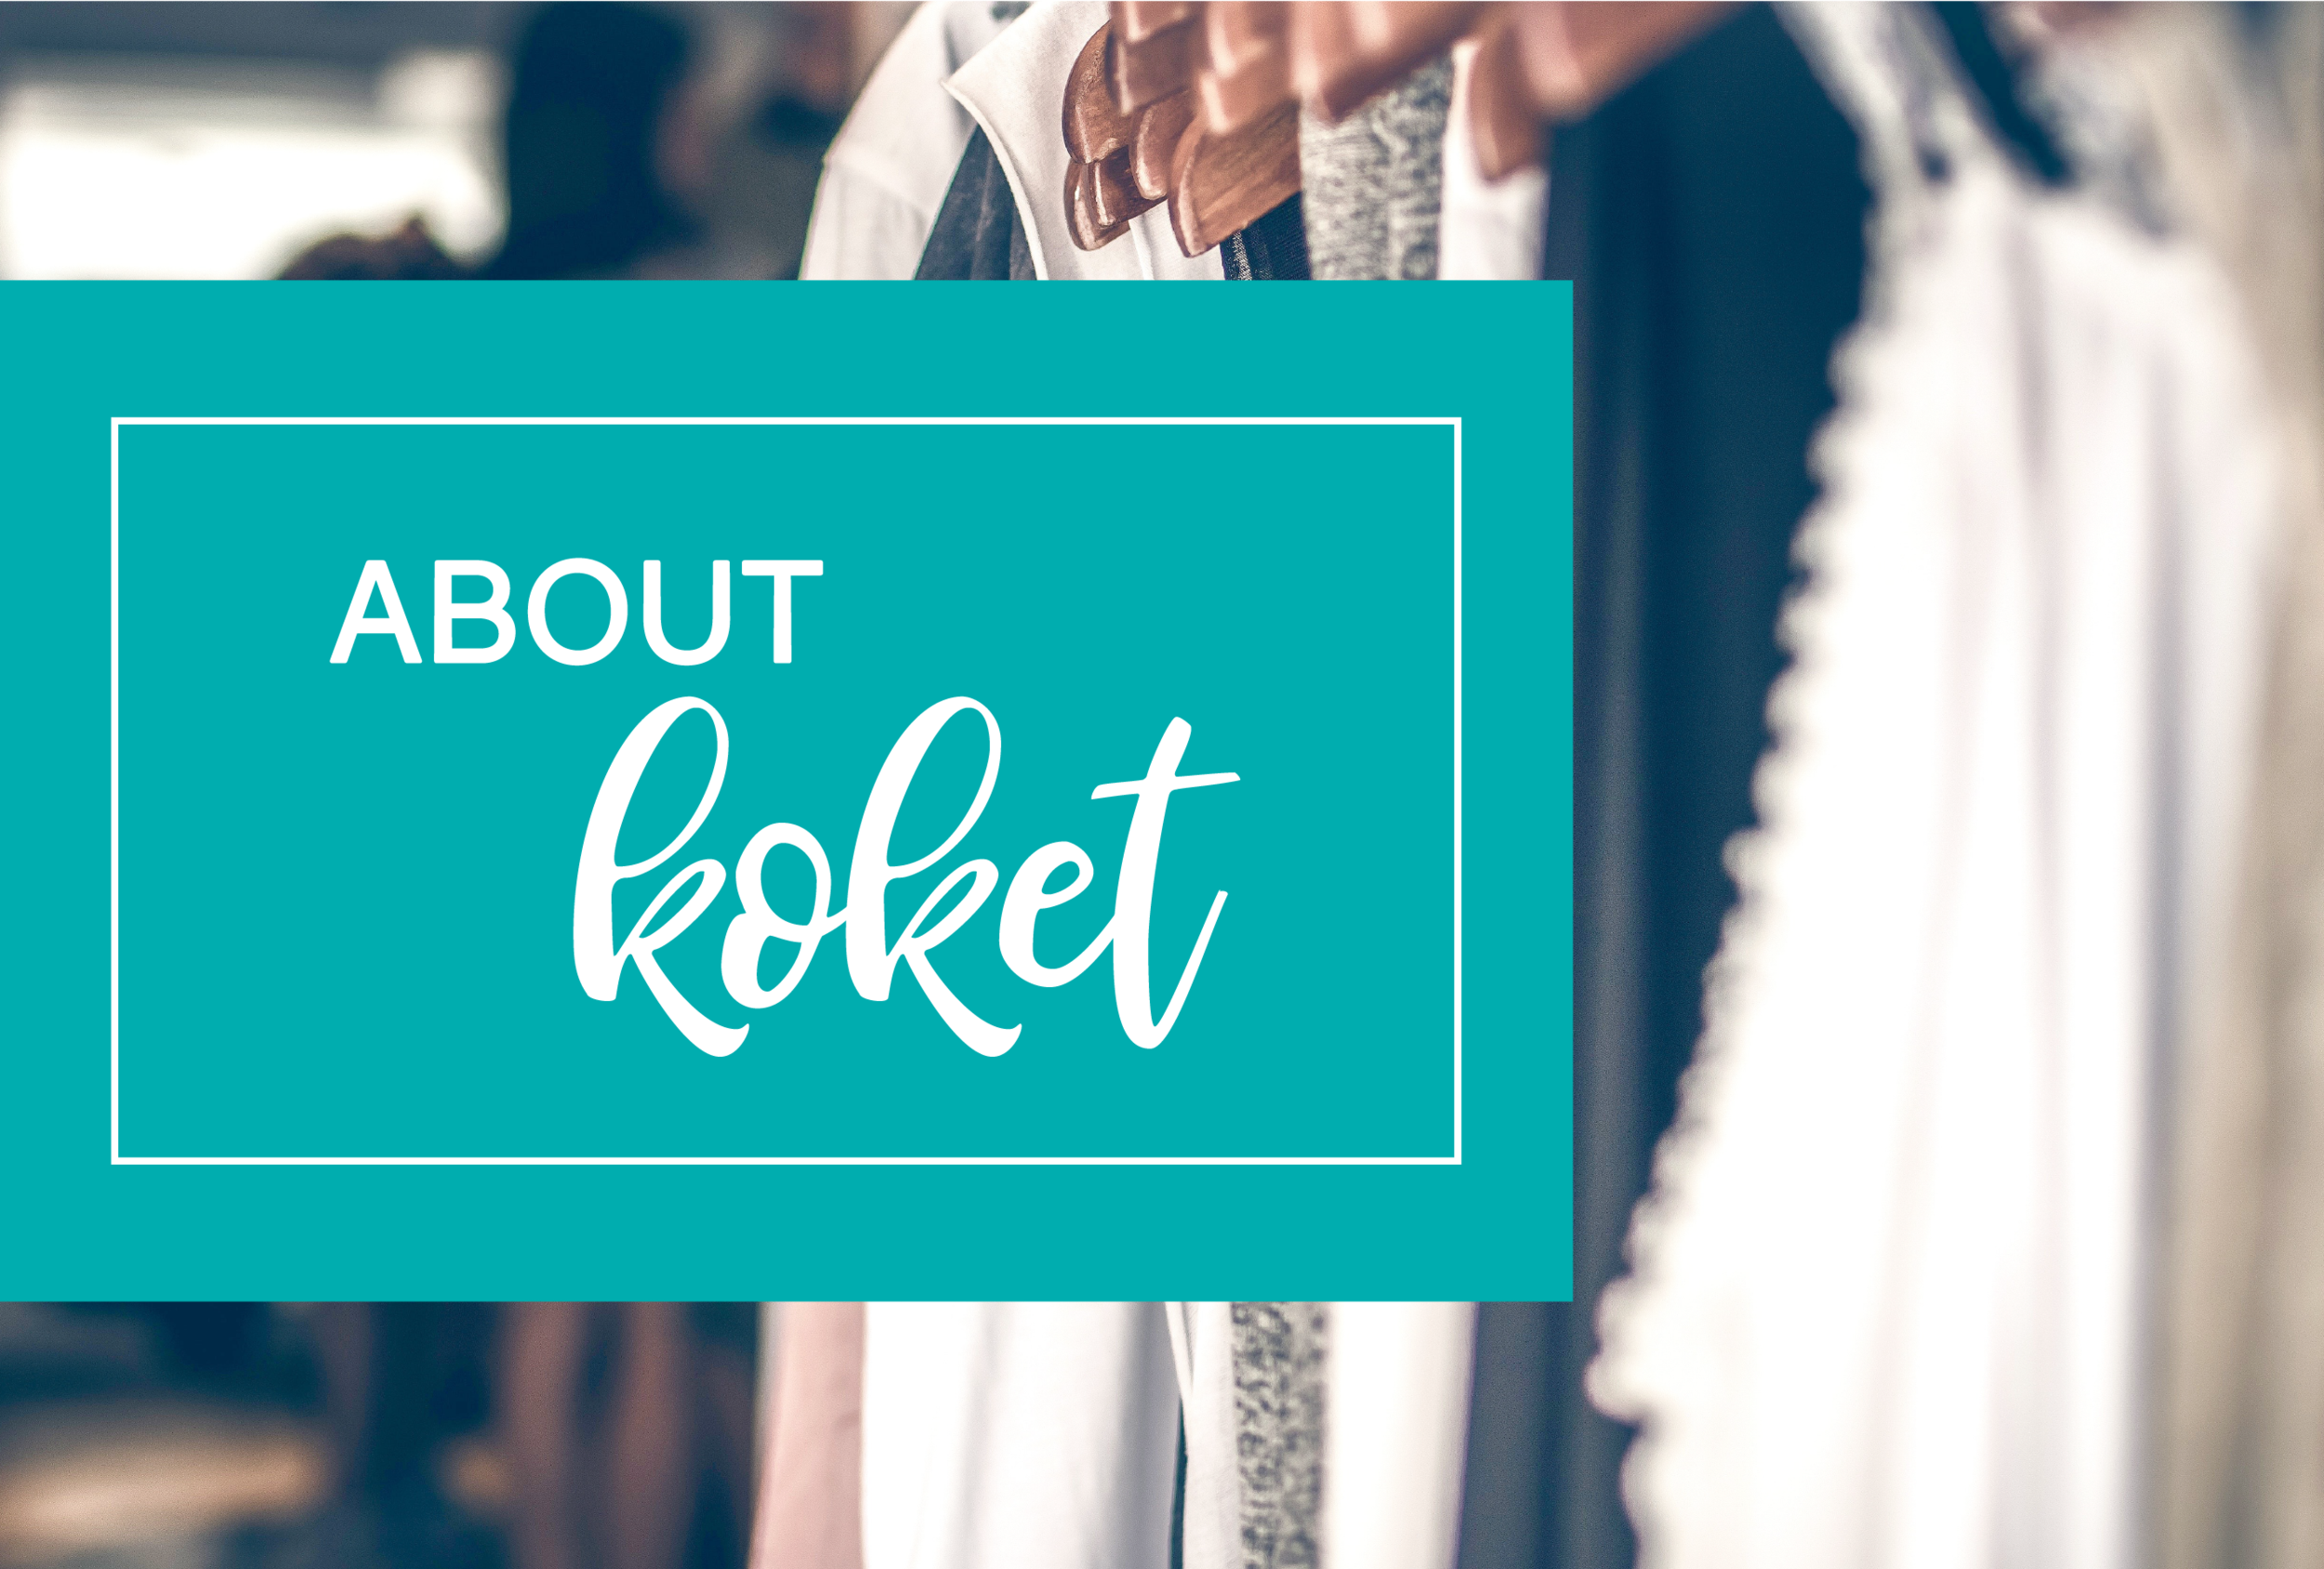 Koket Boutique : A Women's Fashion Boutique in Raleigh, North Carolina